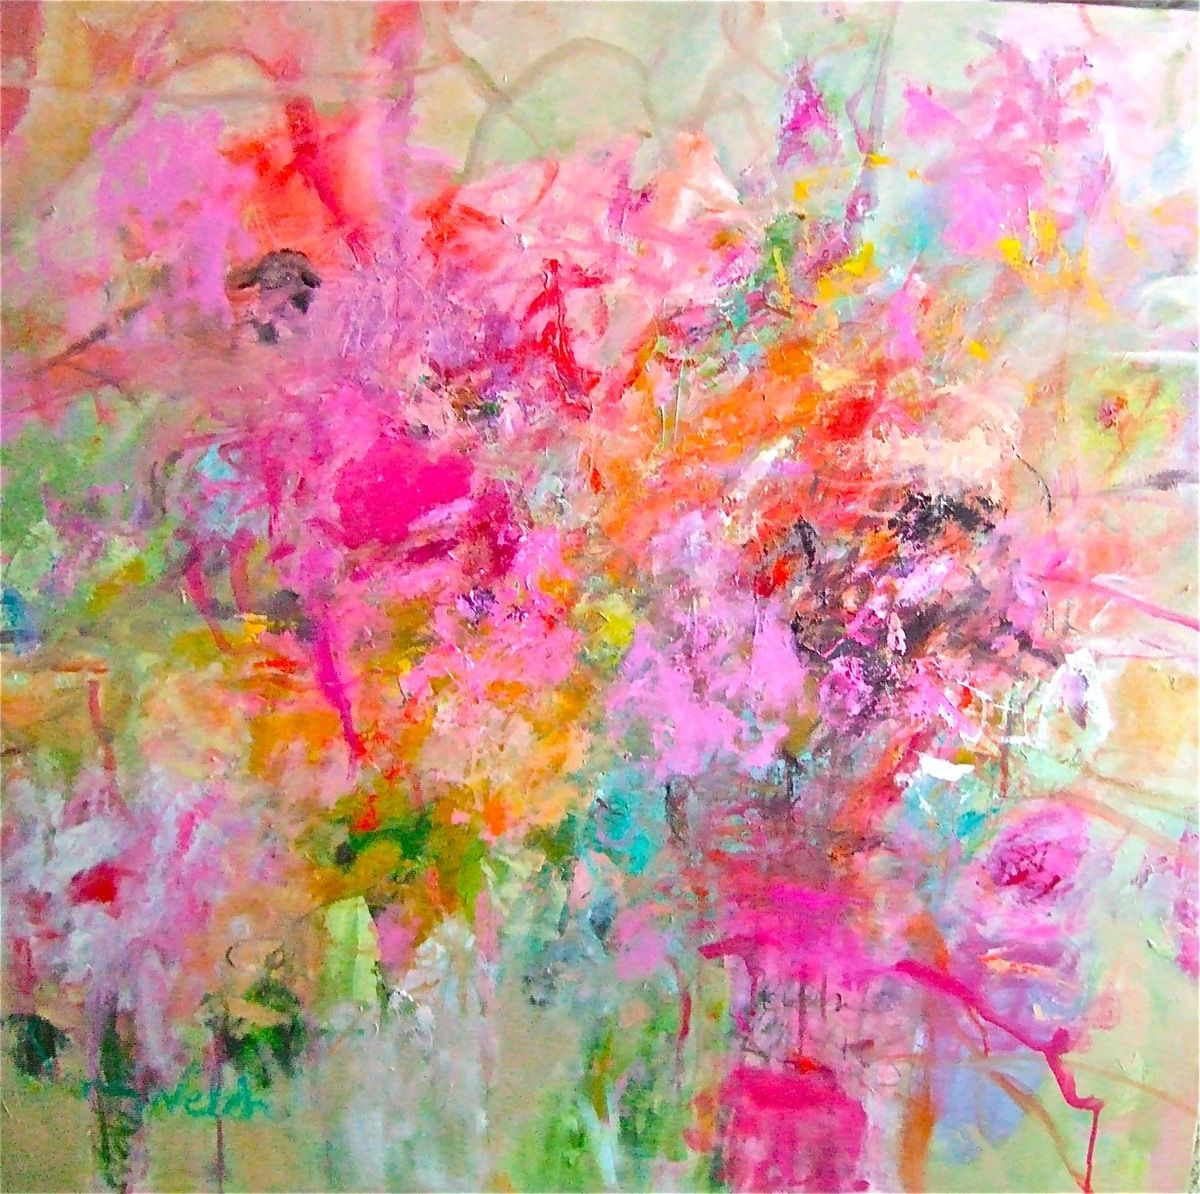 On the BRIGHT SIDE | ZsaZsa Bellagio - Like No Other painting by sandy welch